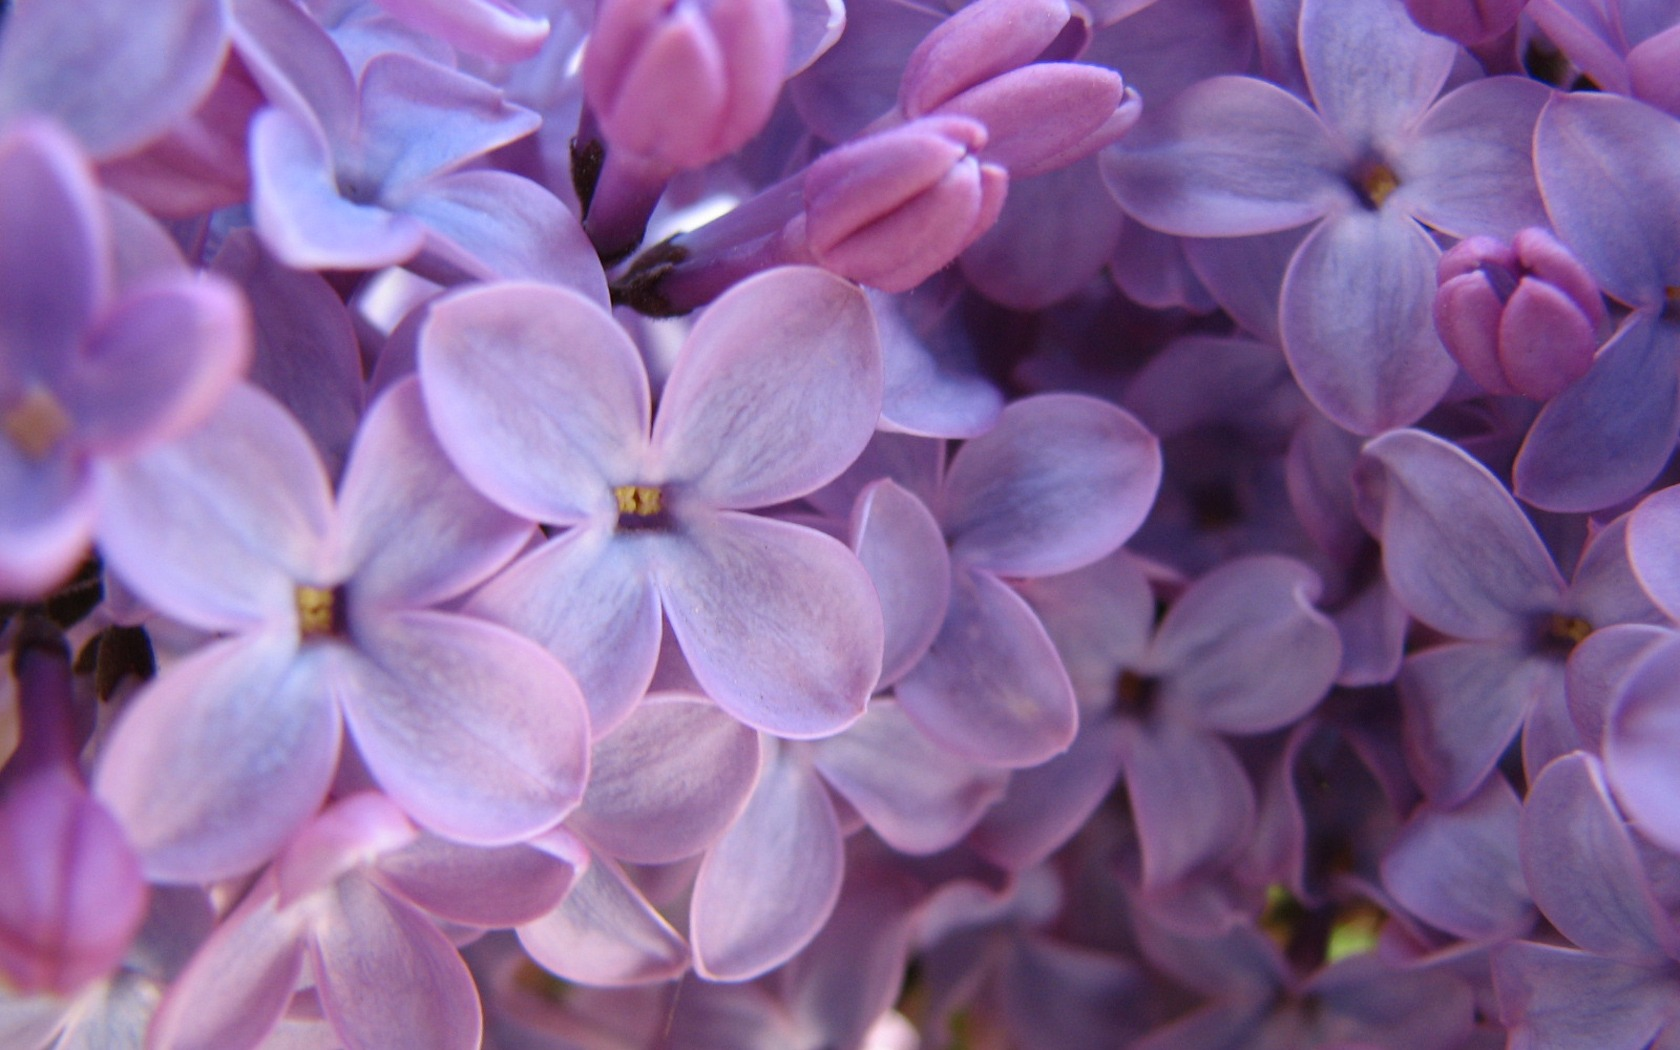 Purple Lilac Wallpaper Flowers Nature Wallpapers In Jpg Format For